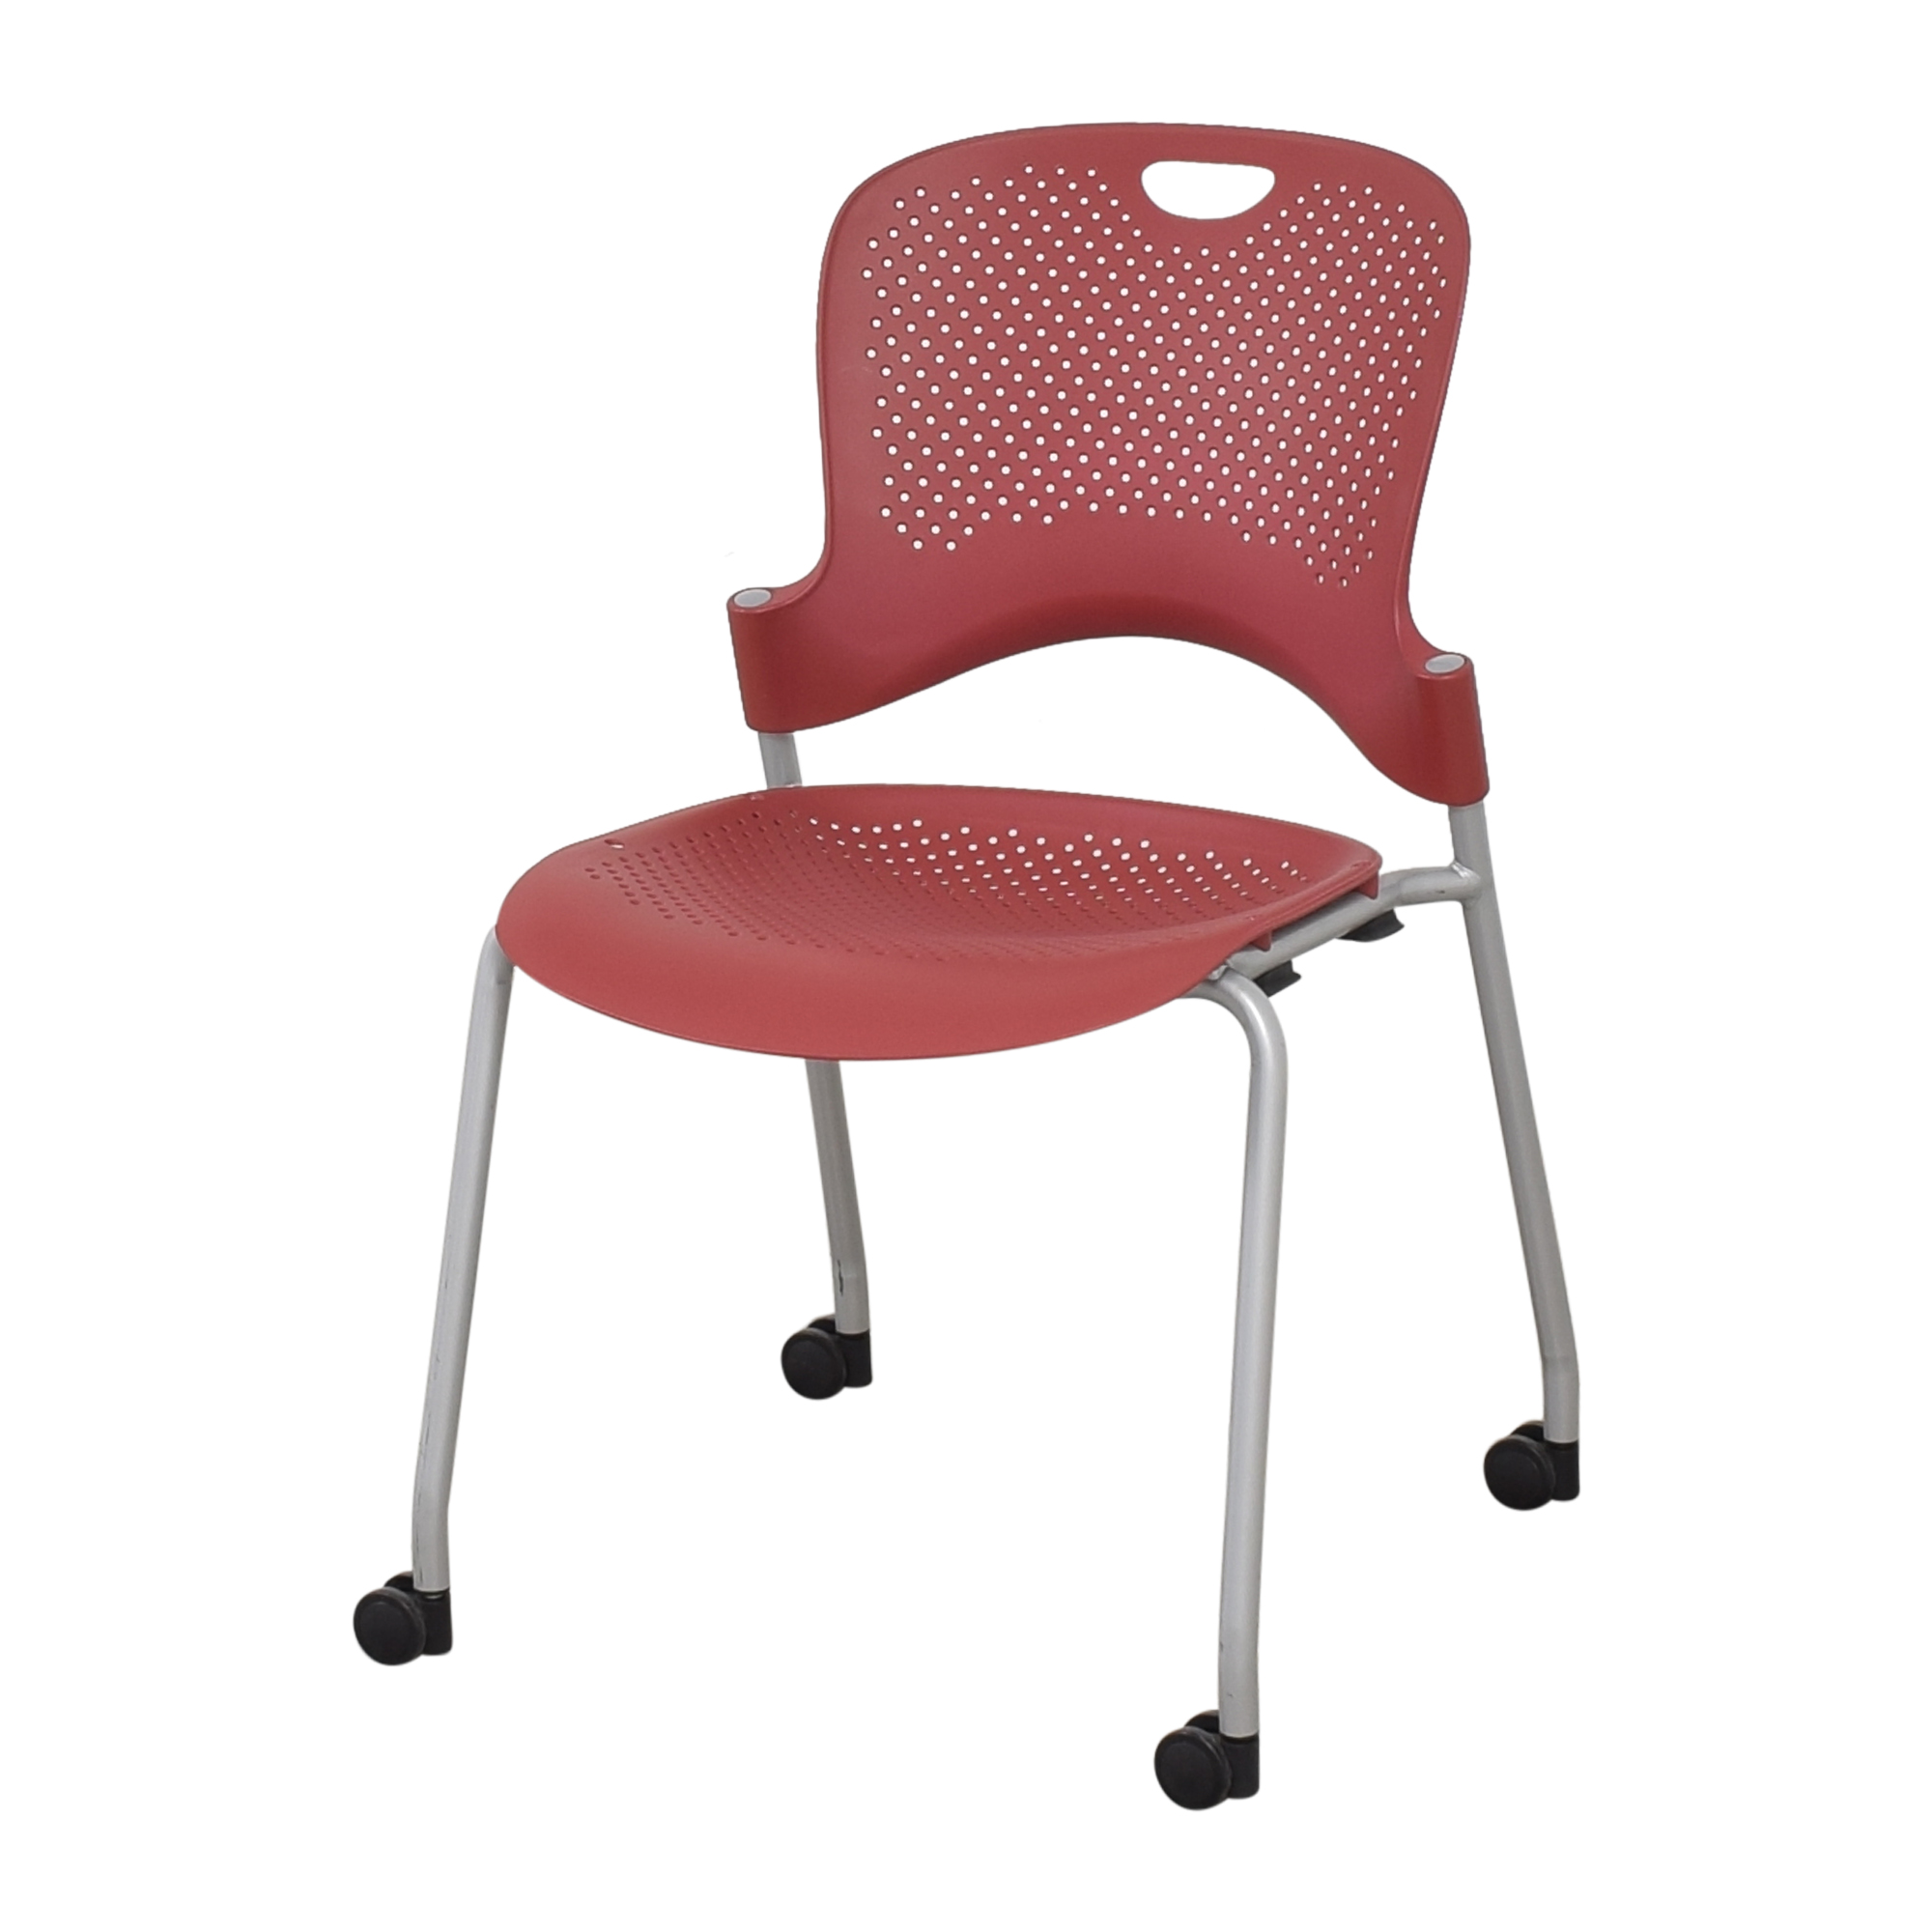 Herman Miller Herman Miller Caper Stacking Chairs